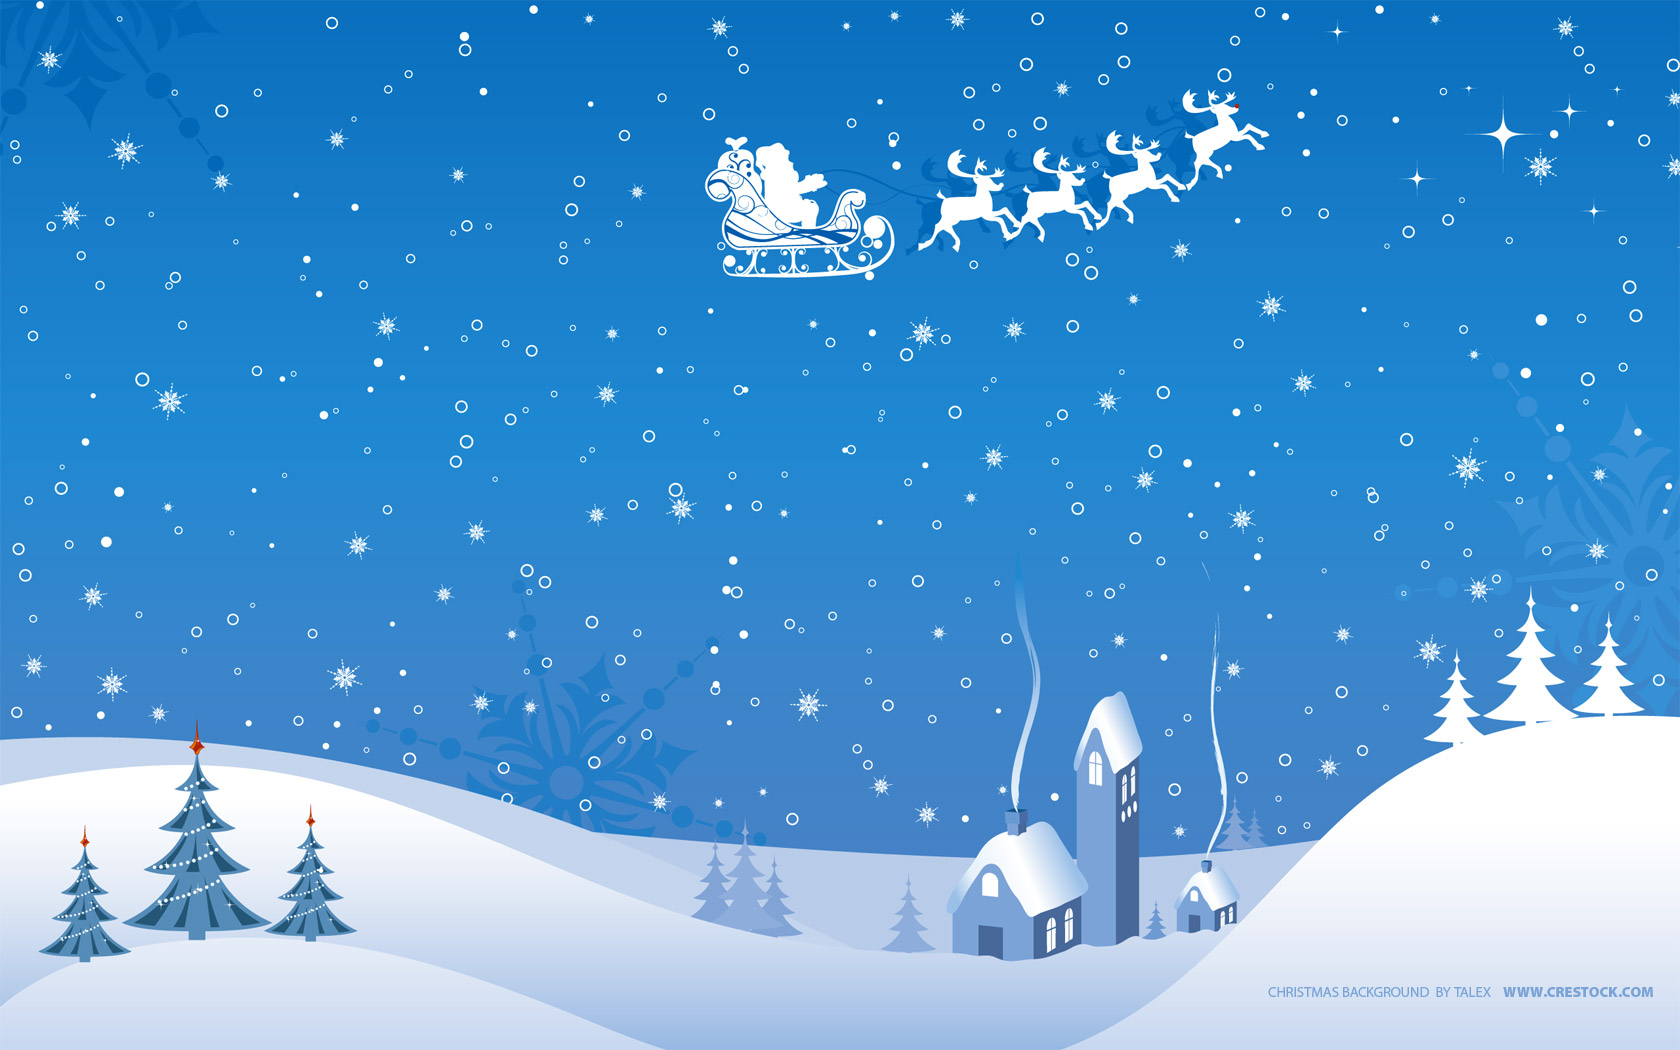 45 Exceptional Widescreen Christmas Wallpapers